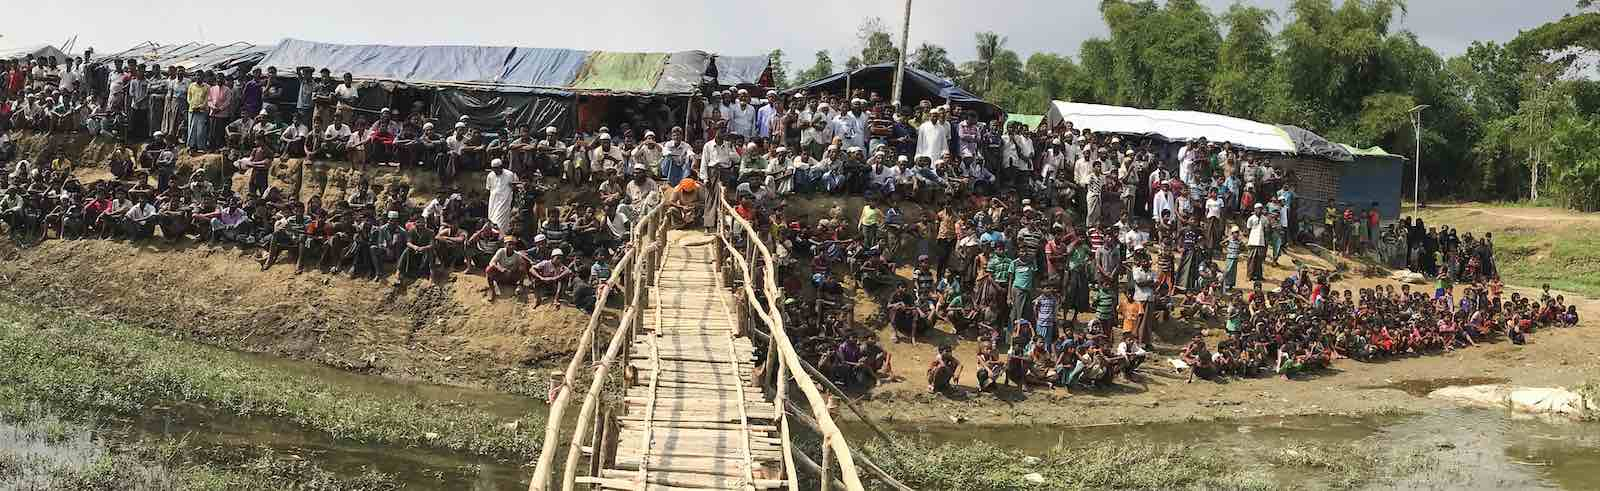 Kutupalong refugee camp in Cox's Bazar, Bangladesh, in April (Photo: United Nations)